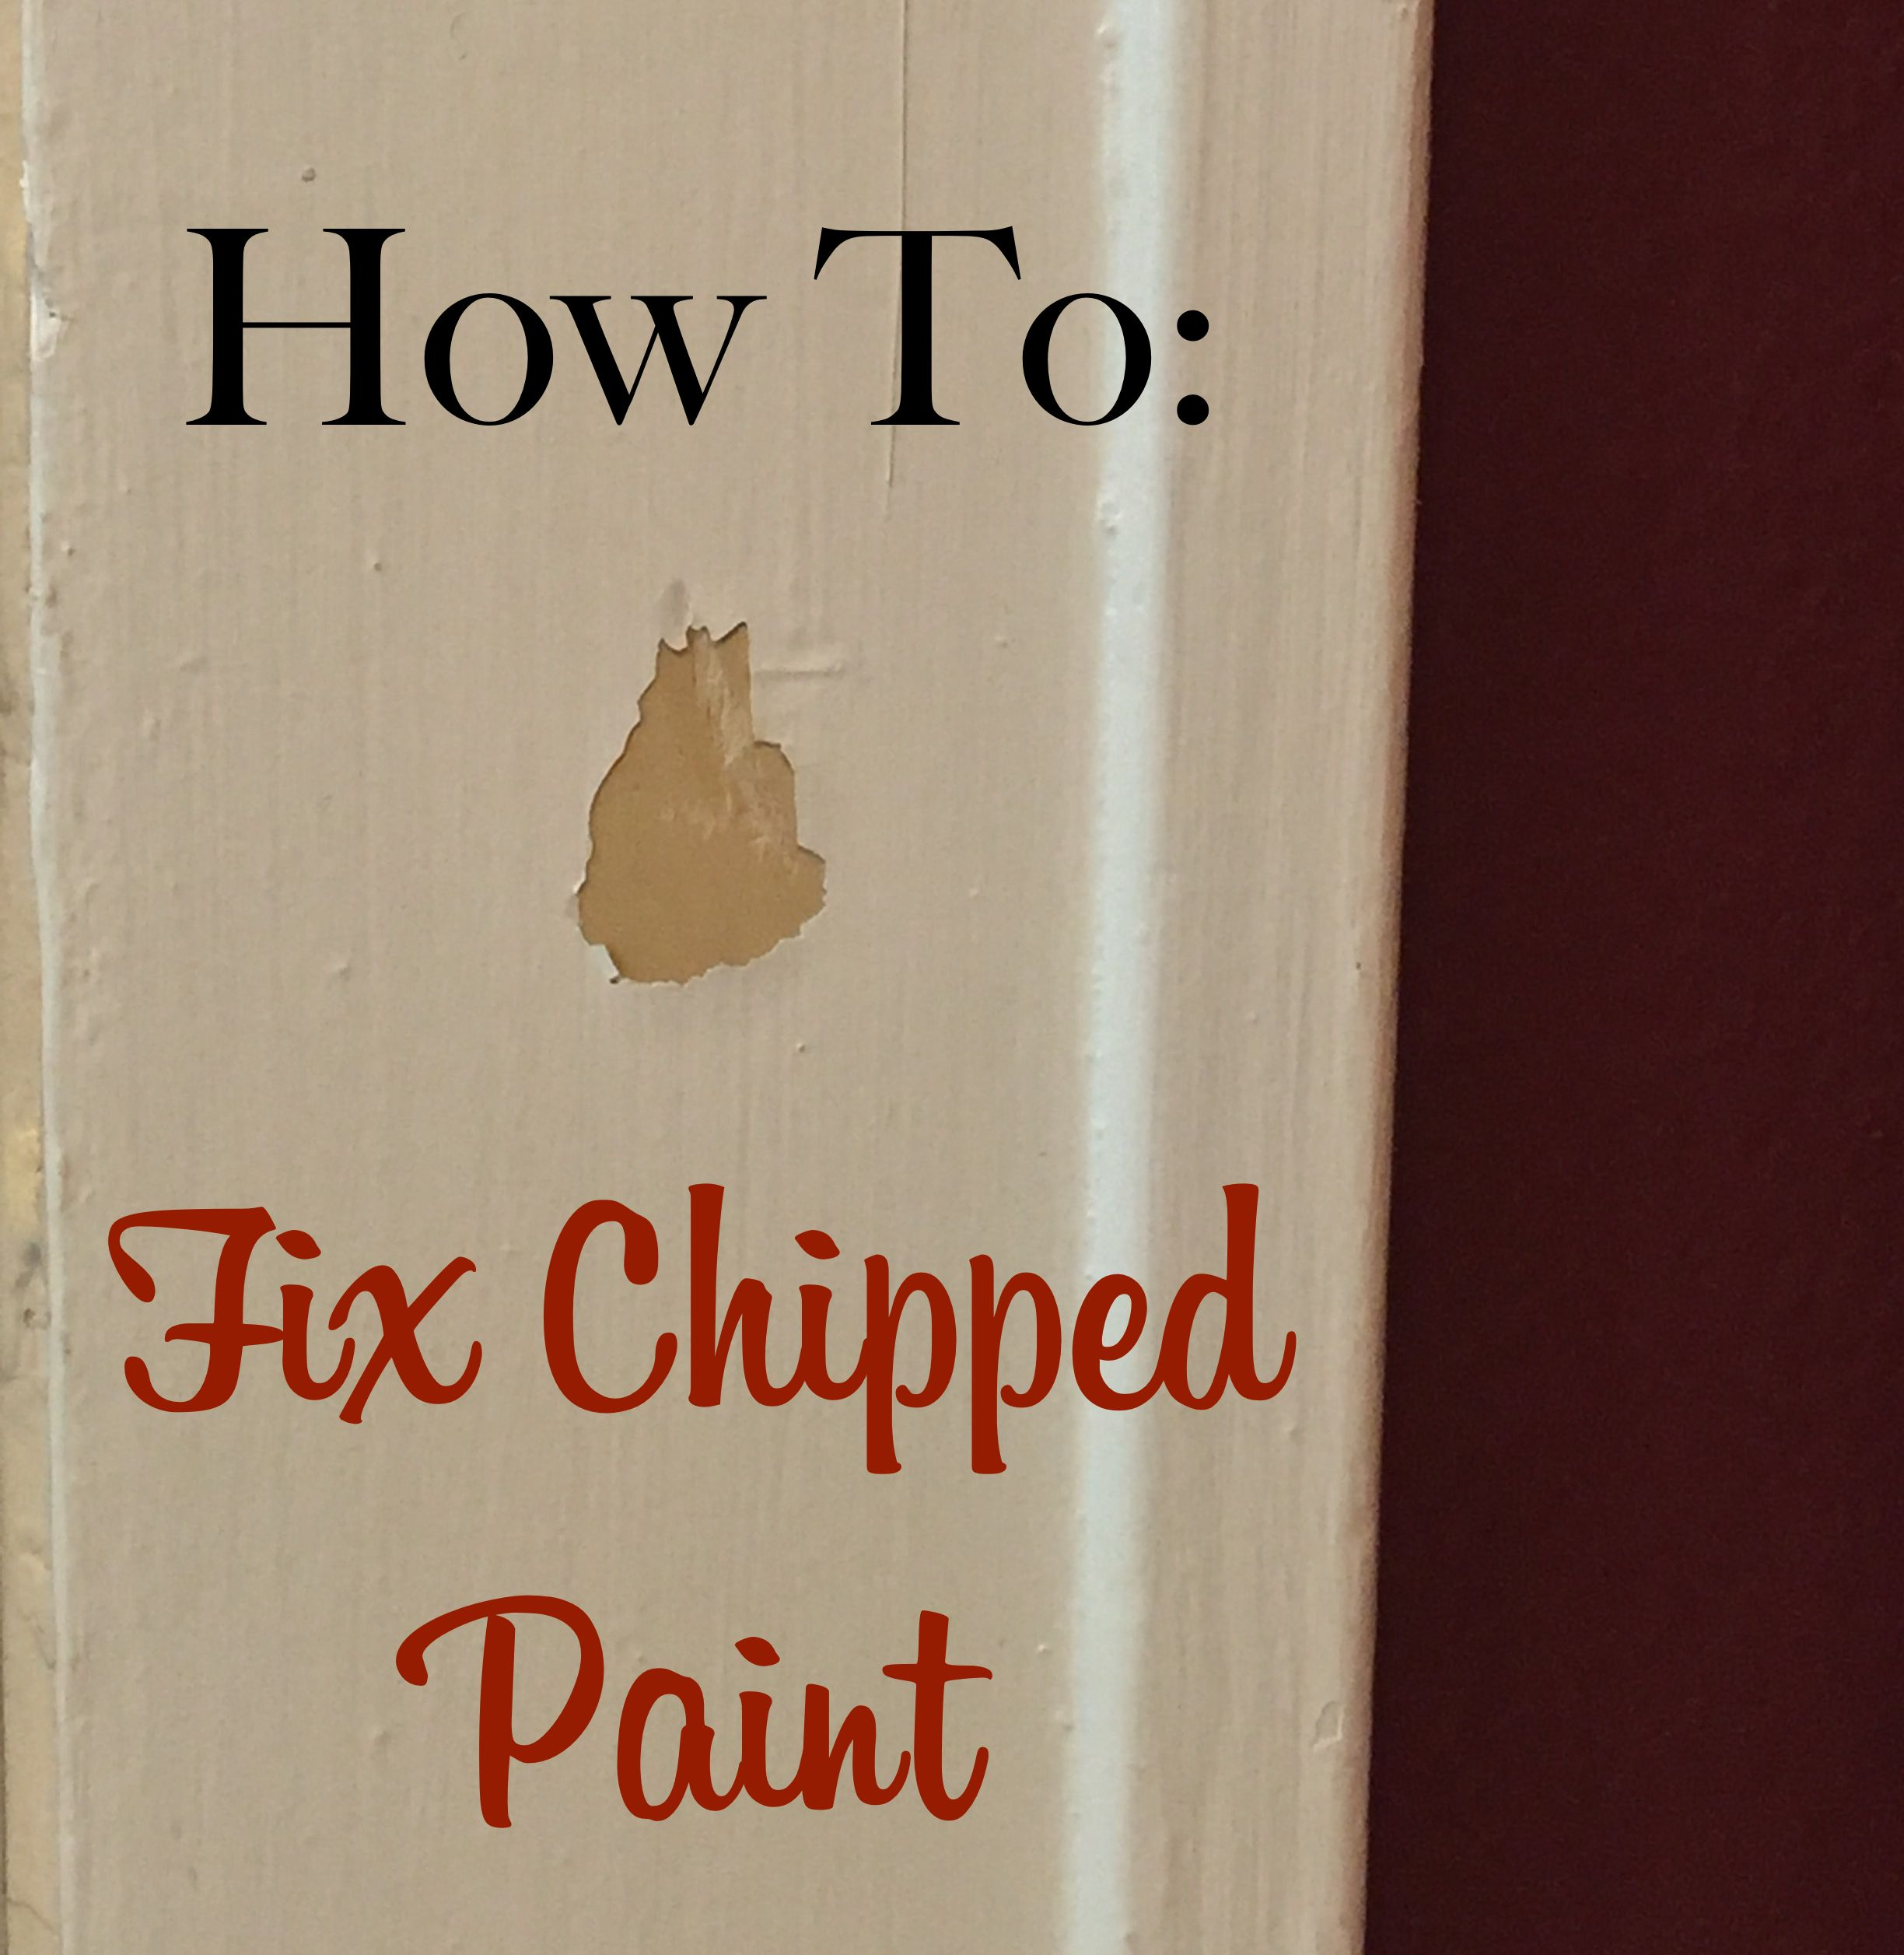 How To Fix Chipped Paint The Craftsman Blog Paint Repair Paint Chips Diy Home Improvement